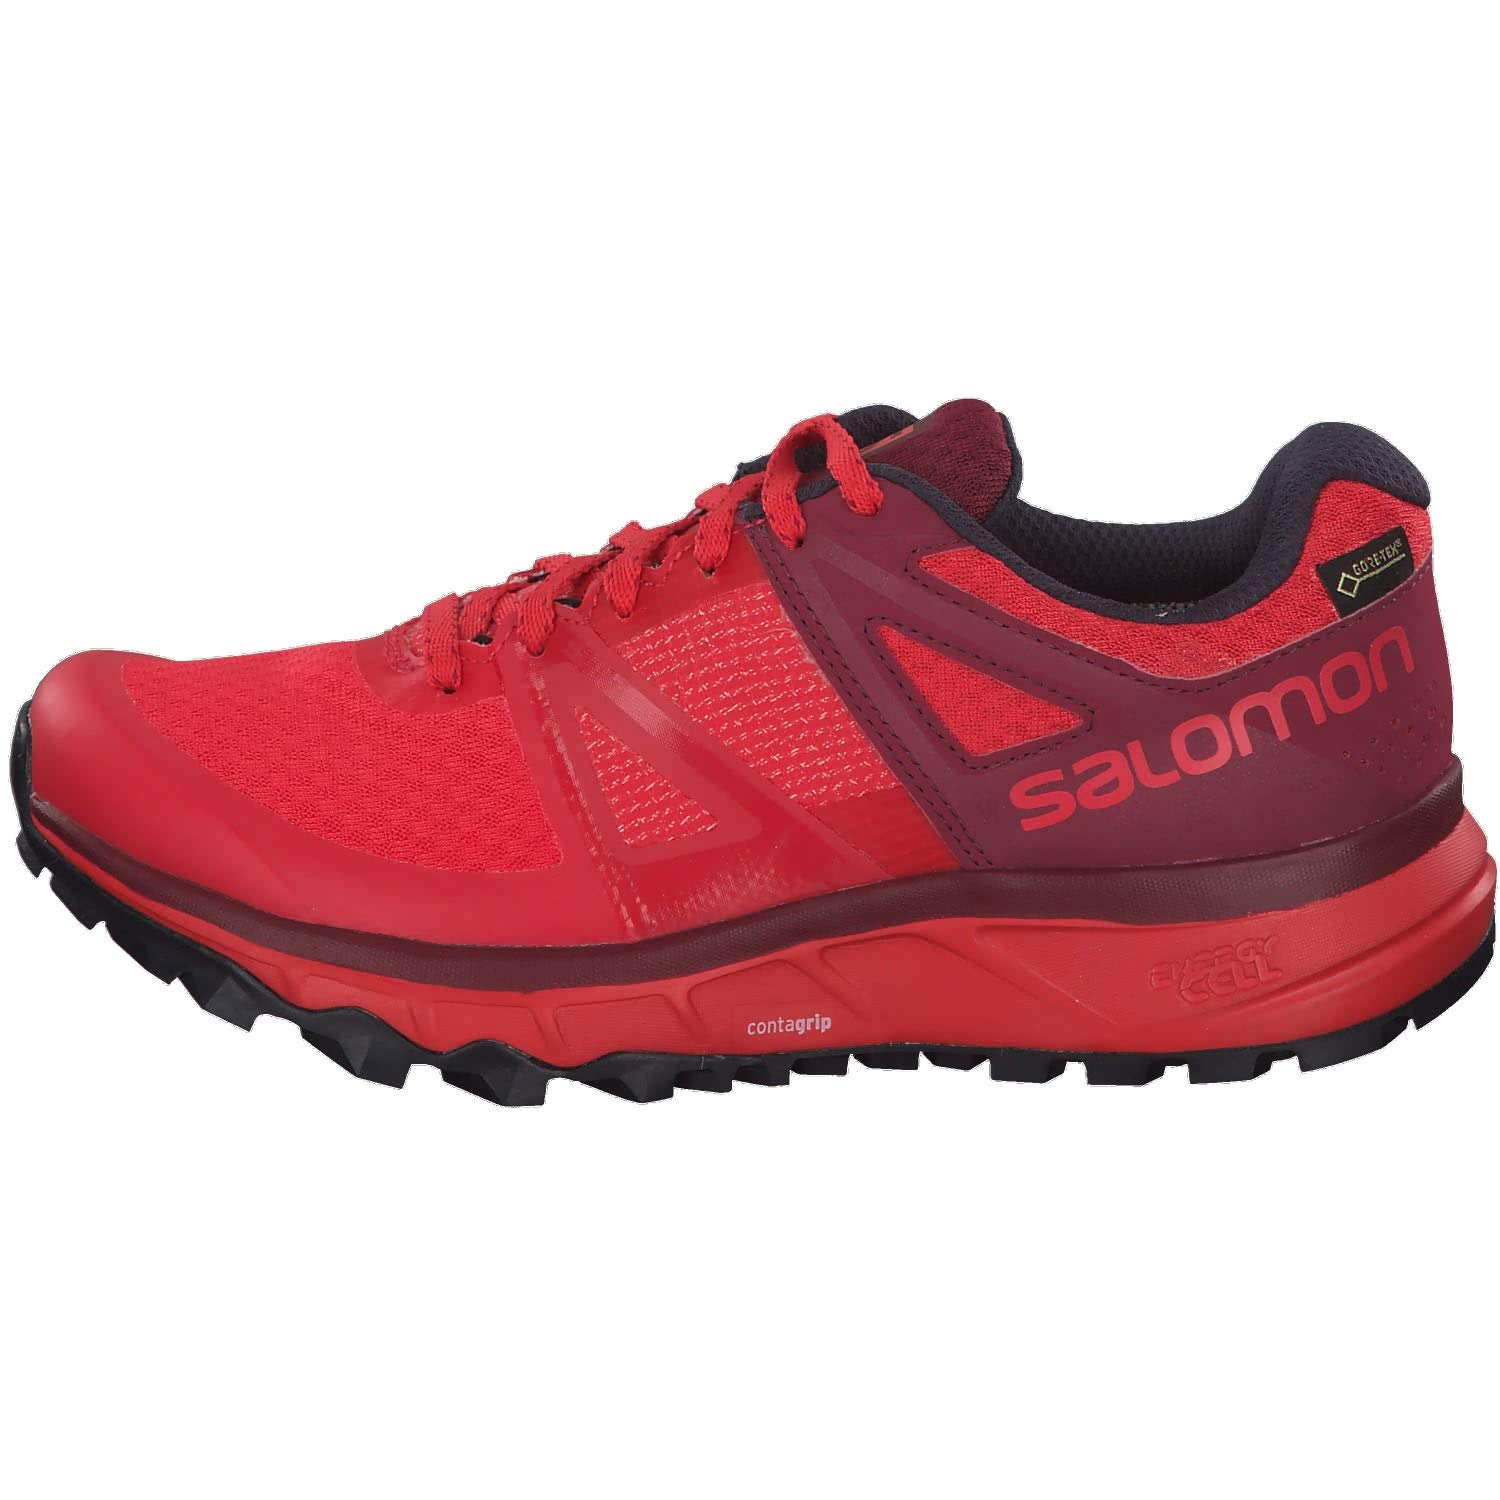 cheap for discount 39315 eade3 Salomon Damen Trailster GTX W, Trailrunning-Schuhe ...